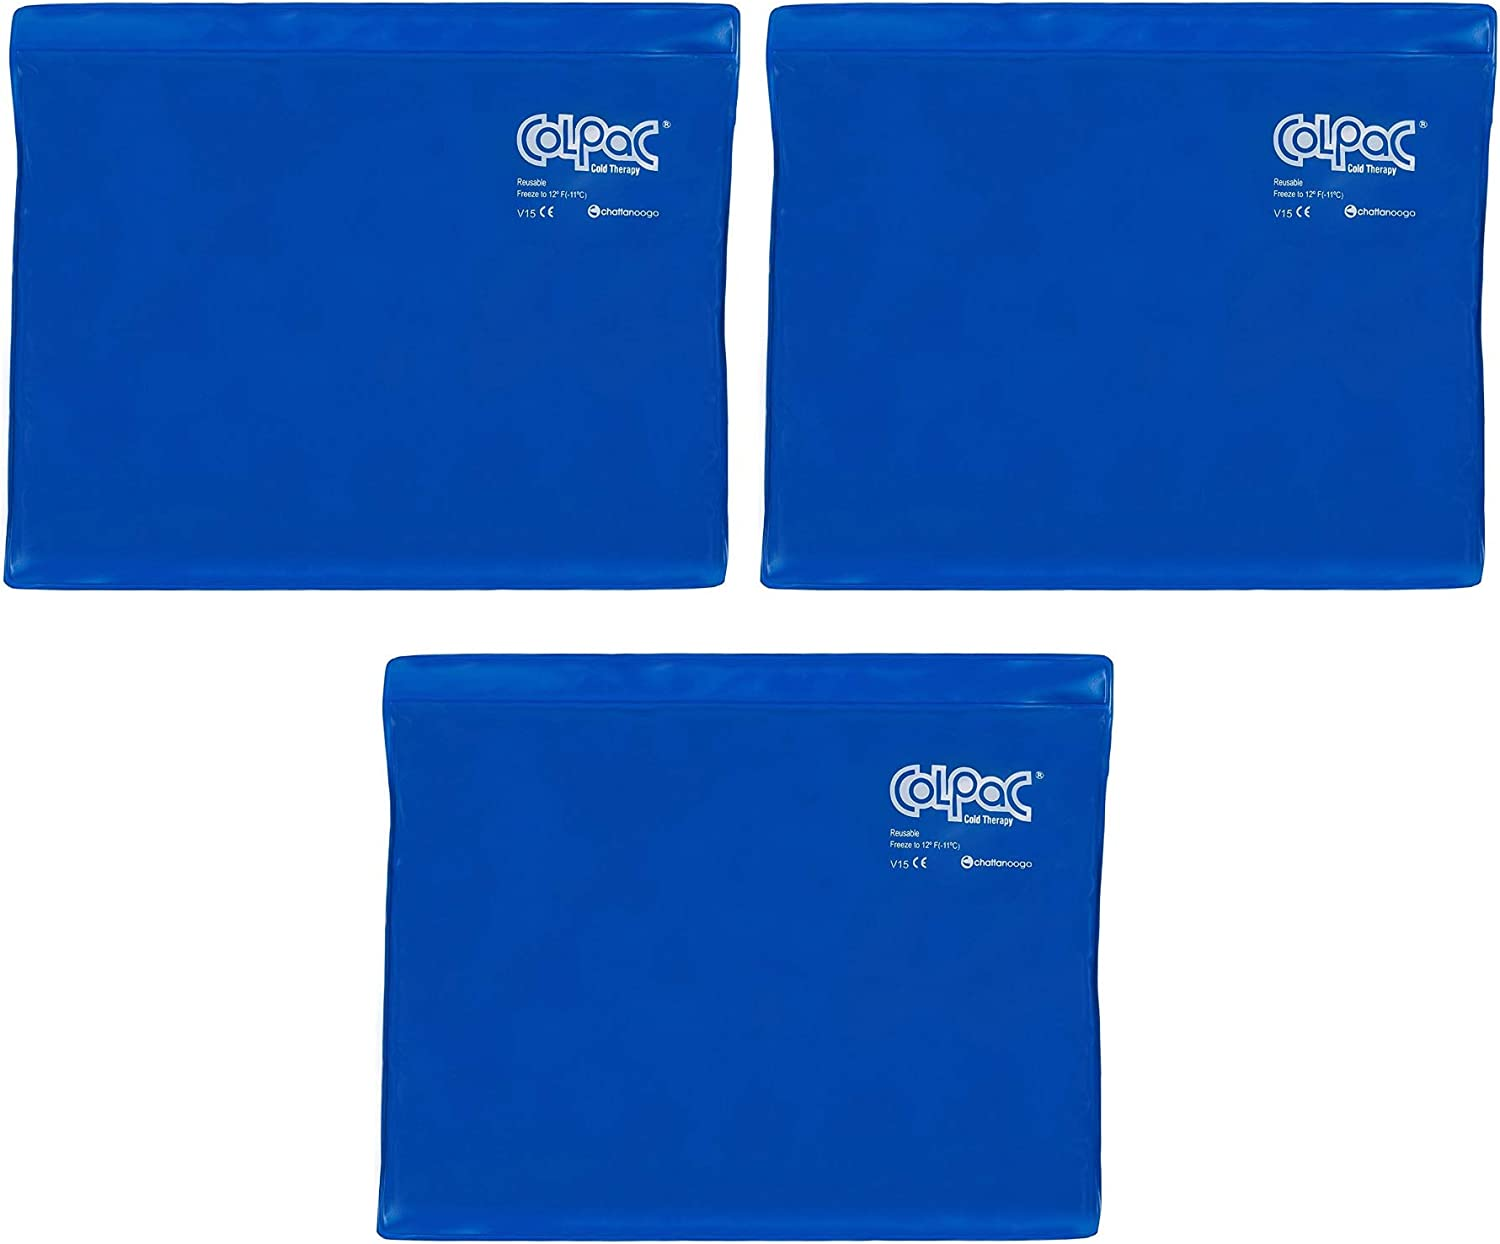 Popular popular Chattanooga ColPac Reusable Gel Factory outlet Ice Pack Blue Cold - Therapy Vin